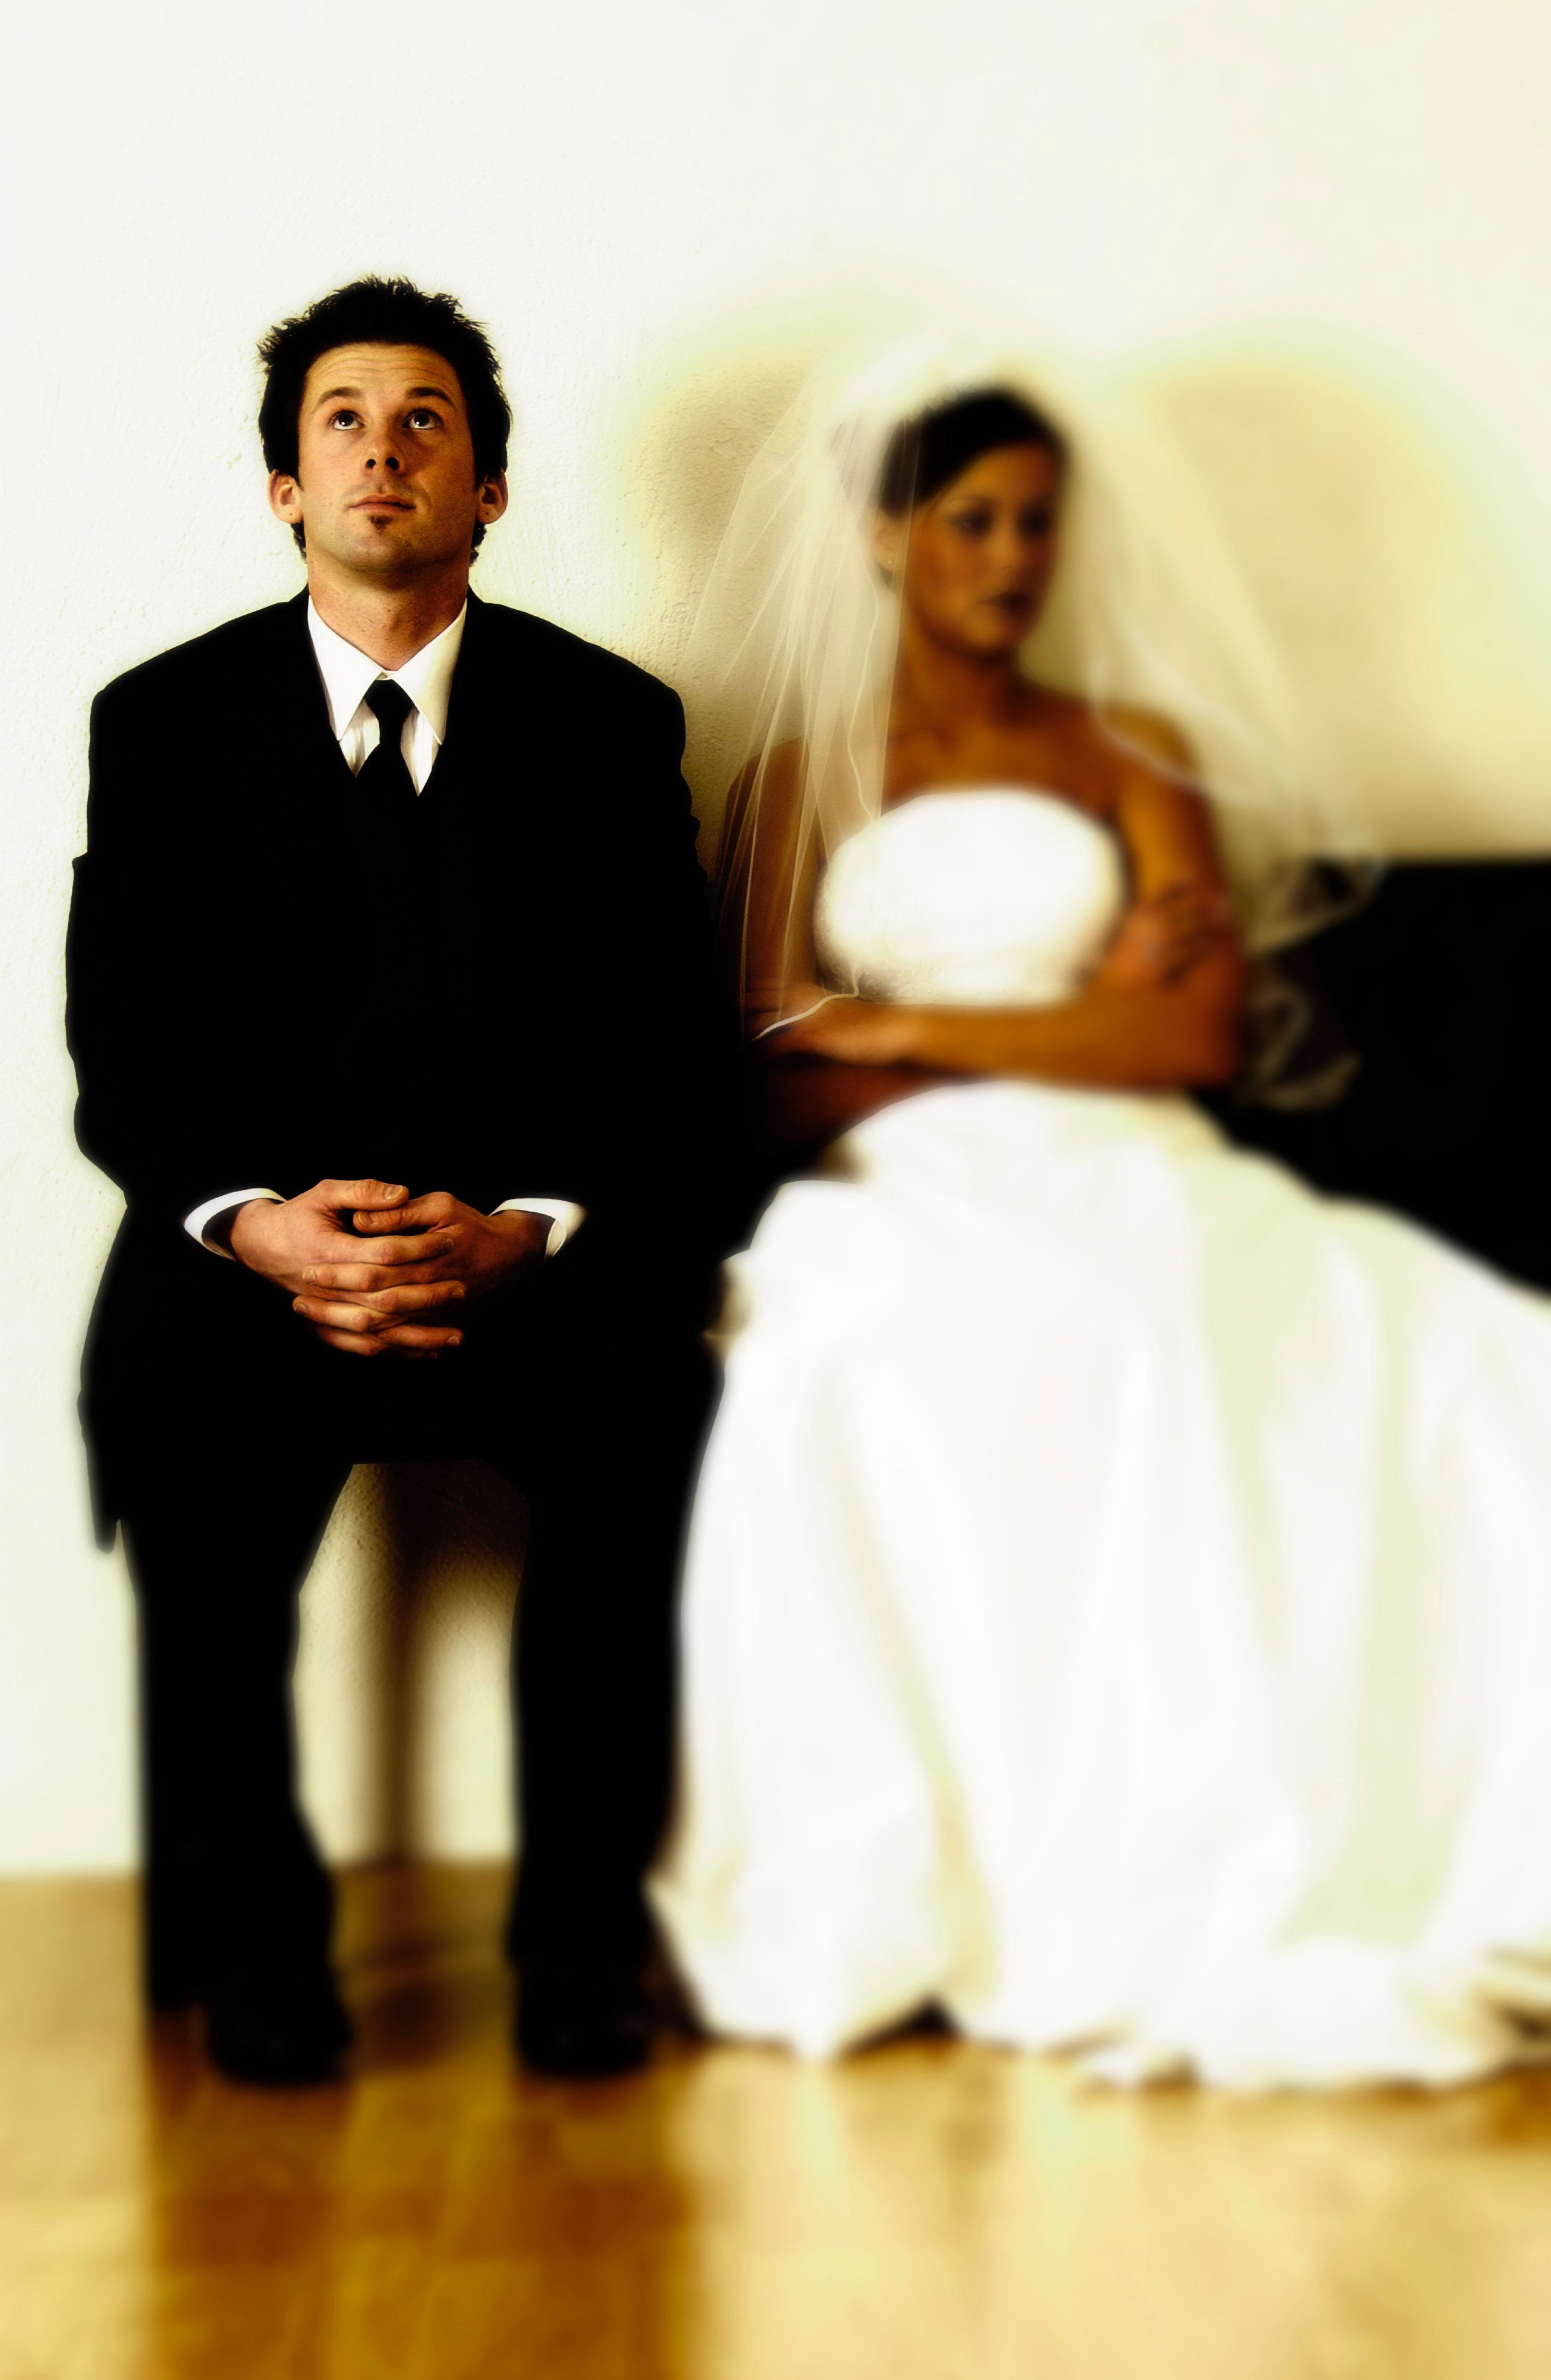 How to know when your ready for marriage